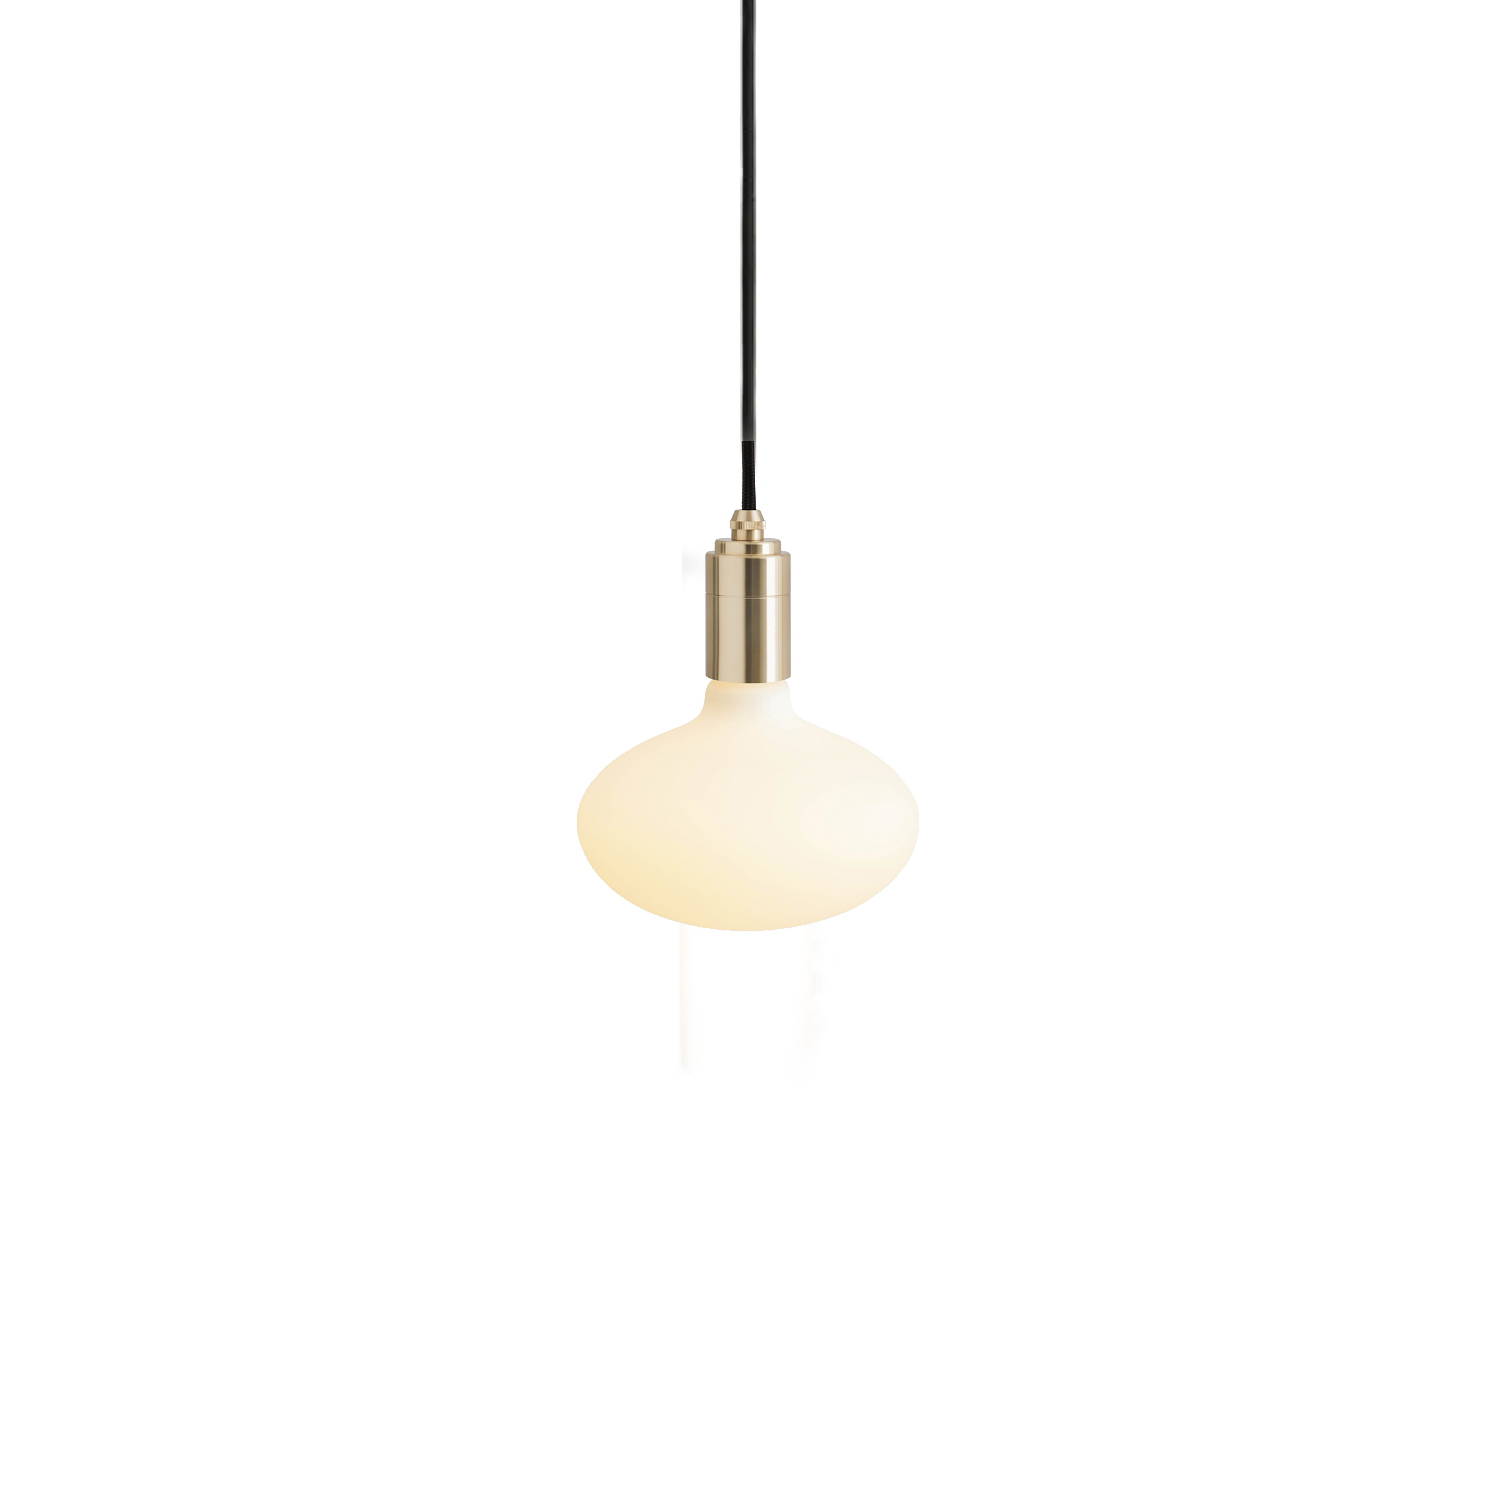 Oval Pendant Light - The Oval Pendant Light pairs the soft, rounded form of the Oval bulb with a Tala pendant in Brass, Graphite, Oak or Walnut finish.  The matte-white glass finish and high lumen output of the Oval bulb combine to produce an even light that is suitable to illuminate a room, hallway or corner space.  Paired with the Brass, Graphite, Oak or Walnut pendant, this is a beautiful and decorative lighting fixture all in one.  Features – Dimmable – Rounded bulb shape – Energy-efficient, LED technology – Matte white glass finish – Available with a Brass, Graphite, Oak or Walnut pendant – 3 metre length cord for maximum versatility   | Matter of Stuff